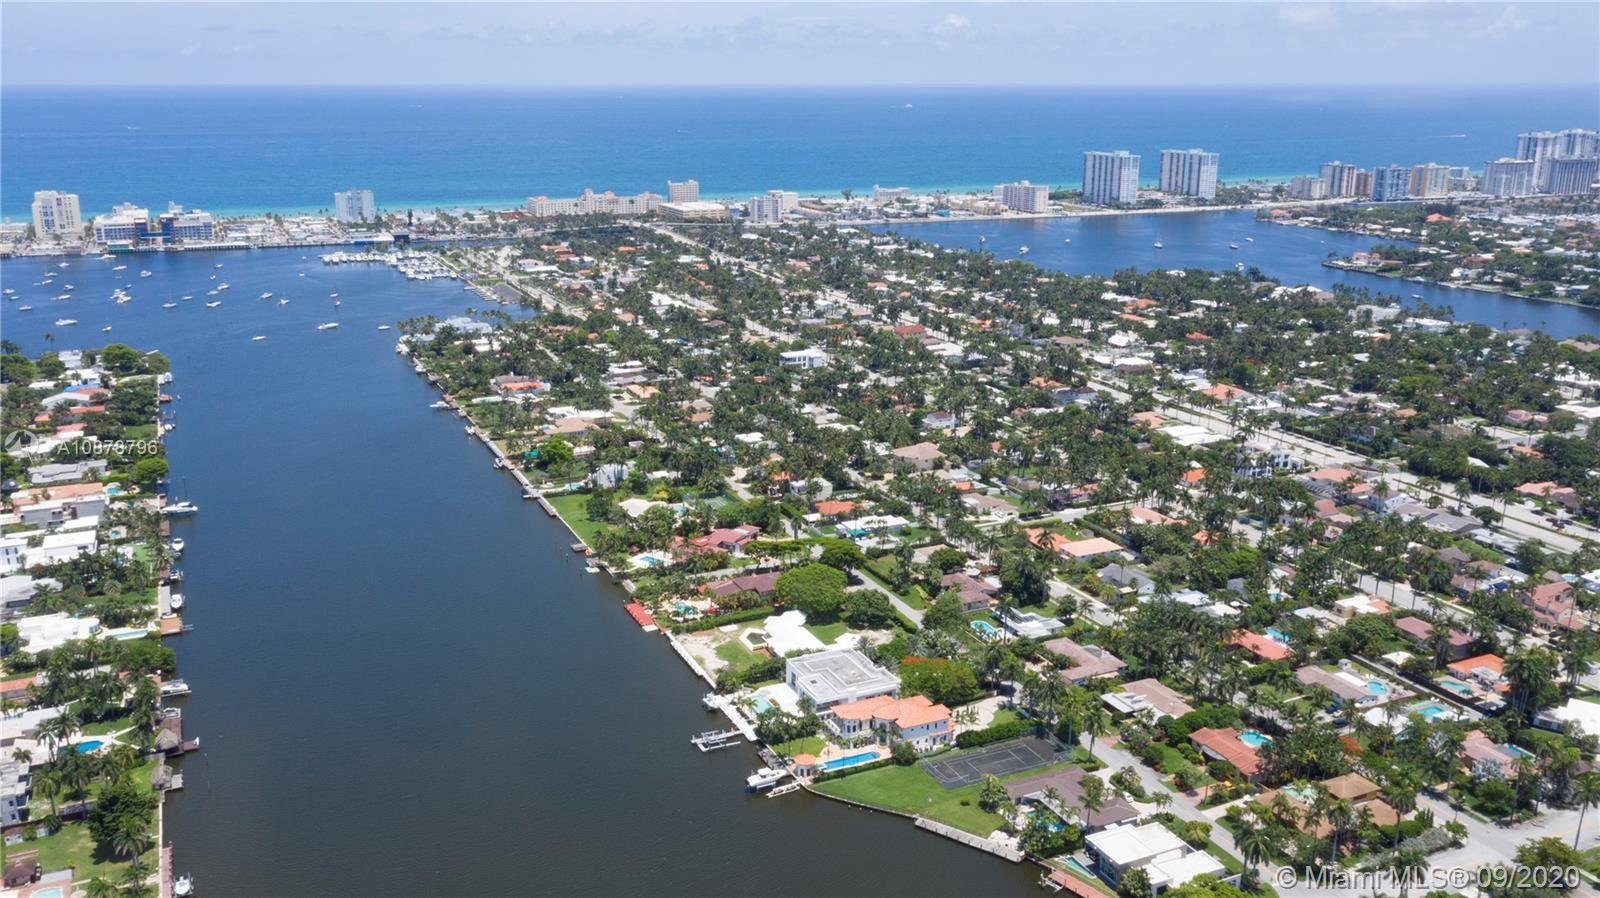 Excellent oversize 32,508 Sqf waterfront LOT in Hollywood Lakes. LOT IS GOING TO BE CLEAR AND READY FOR YOU TO BRING YOUR DREAM HOME TO REALITY. 2019 New Seawall and 80 ft. dock built to the highest & most current standards. Boater's paradise with direct access to Intracoastal and Atlantic Ocean no fixed bridges. Huge front and back yard perfect for designing per your lifestyle desire. Enjoy the richness of the new SLS Golf Resort (formerly Diplomat) which is going through a $220 million renovation and course redesign by Greg Norman. PRICE IS FOR LAND VALUE .HOLLYWOOD HAS IT ALL!! Call to get an aerial video tour.